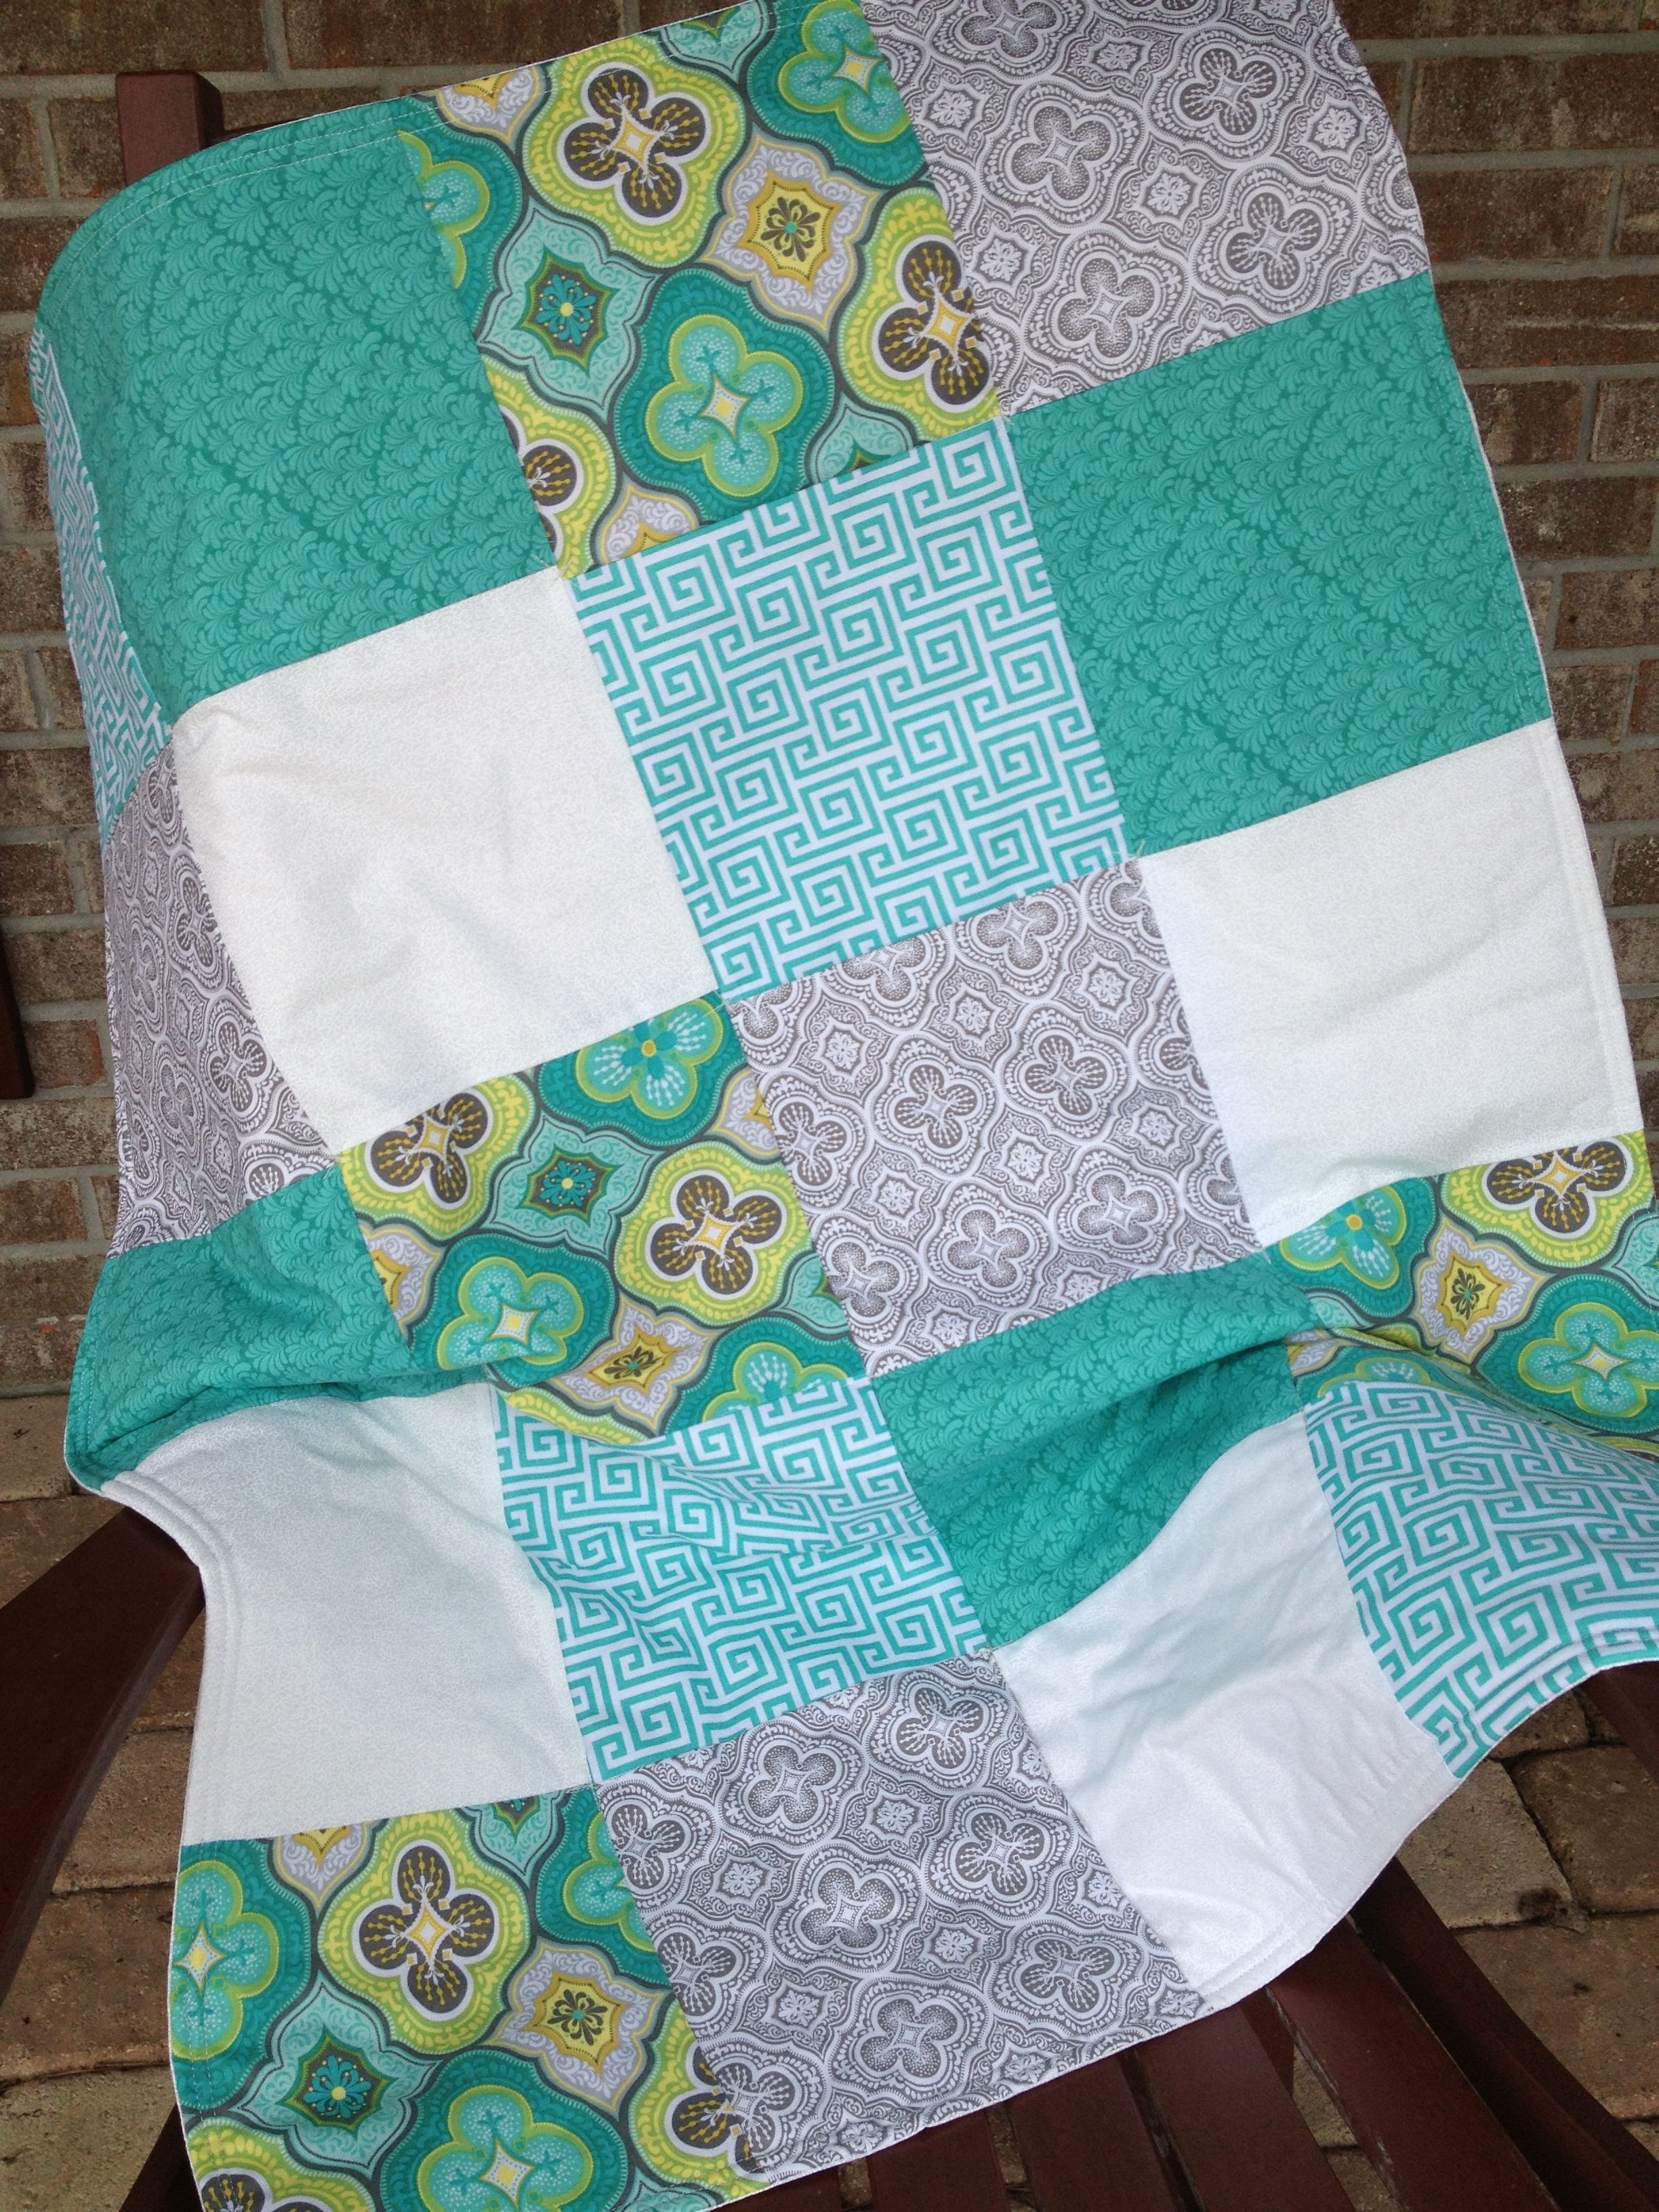 Baby cole quilted blanket by appliqué shabby sew monette now that